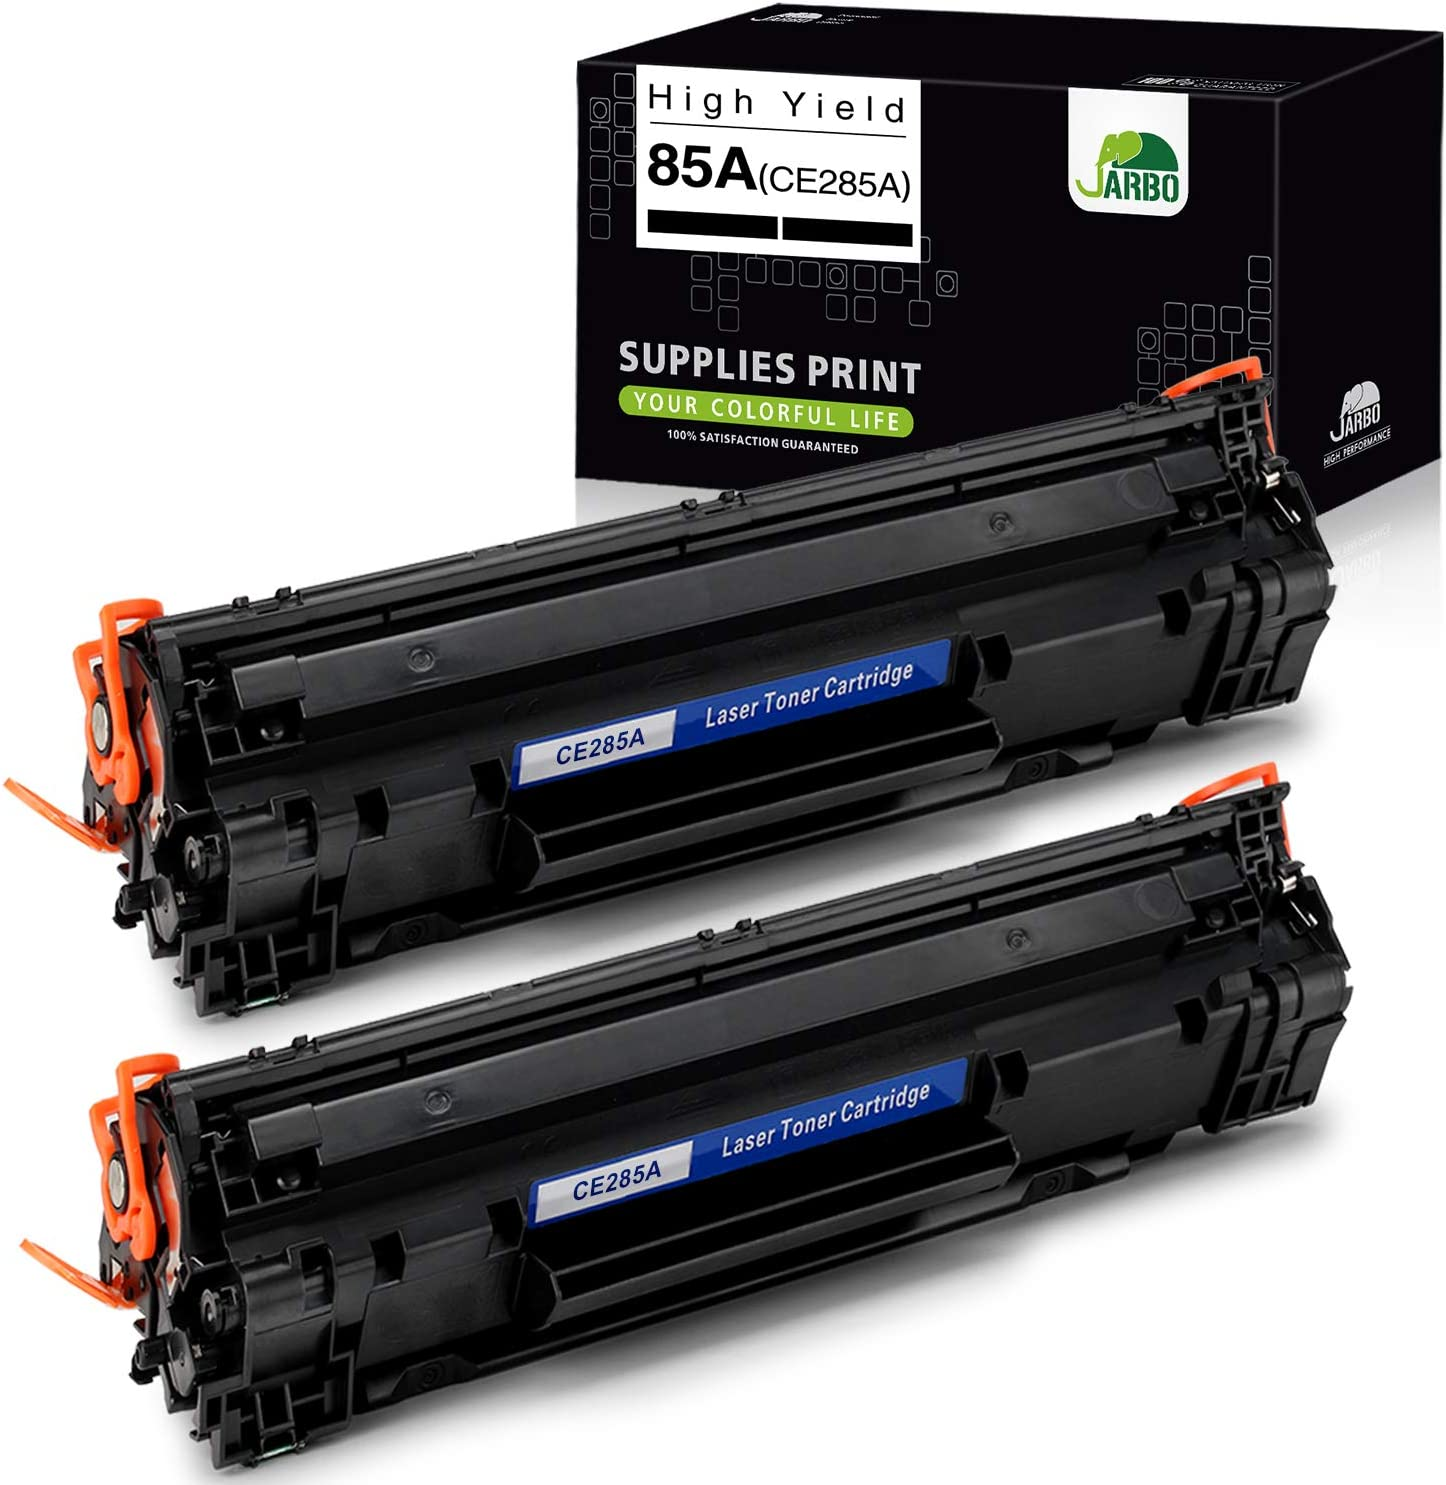 JARBO Compatible Toner Cartridges Replacement for HP 85A CE285A, Compatible with HP Laserjet Pro P1102W P1109W M1212NF M1217NFW Printer (Black), 2-Pack